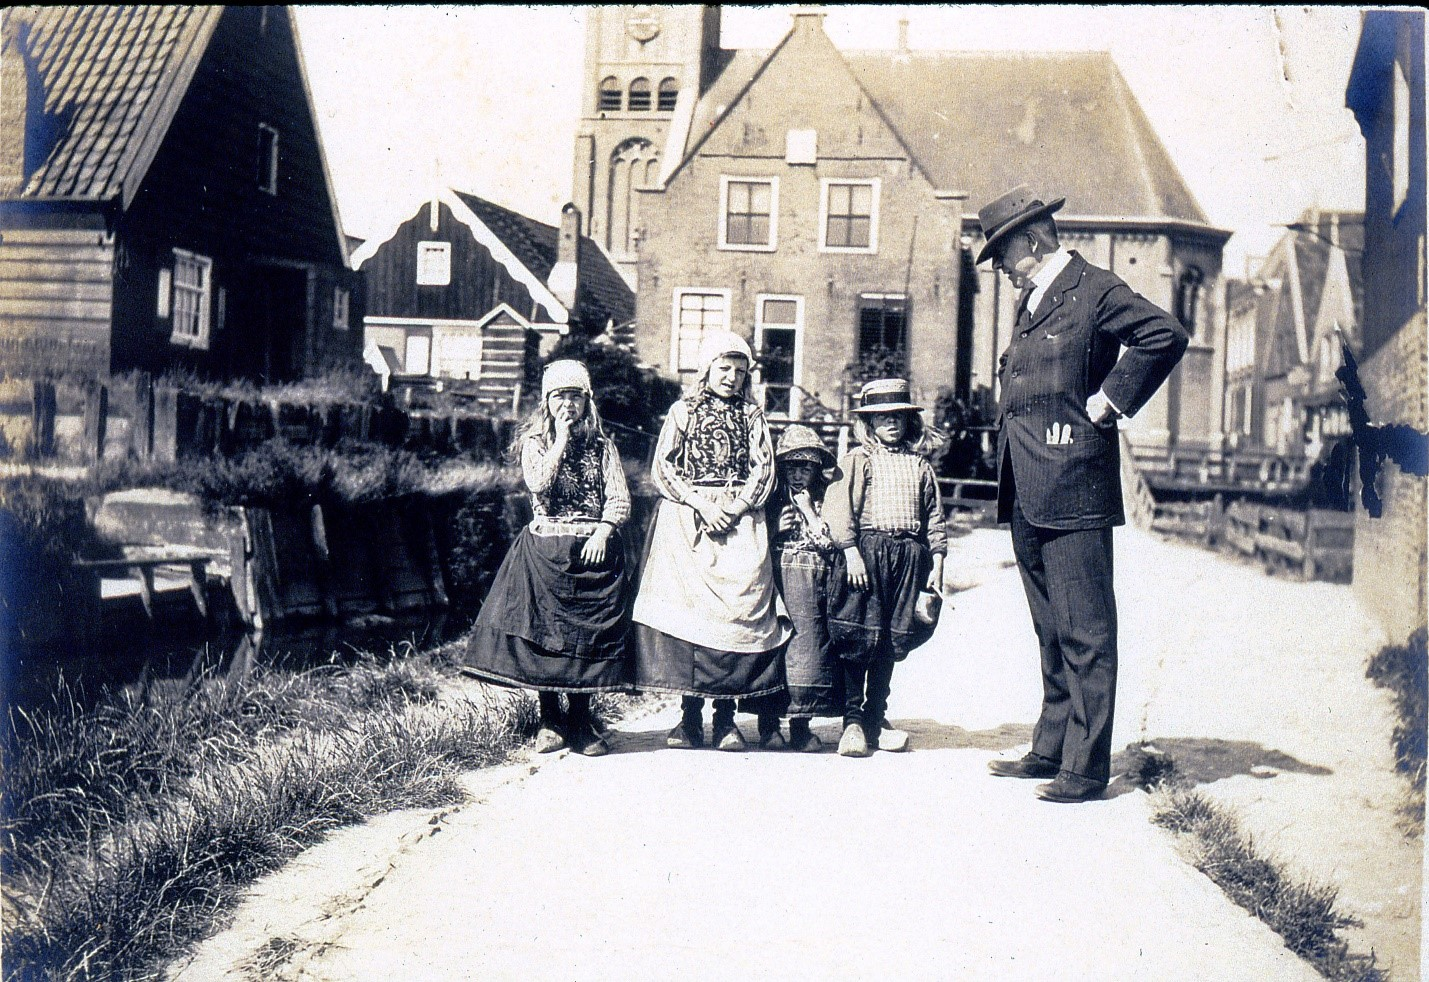 Charles Deering posing with local children in the Netherlands during one of his European travels ca. 1910s